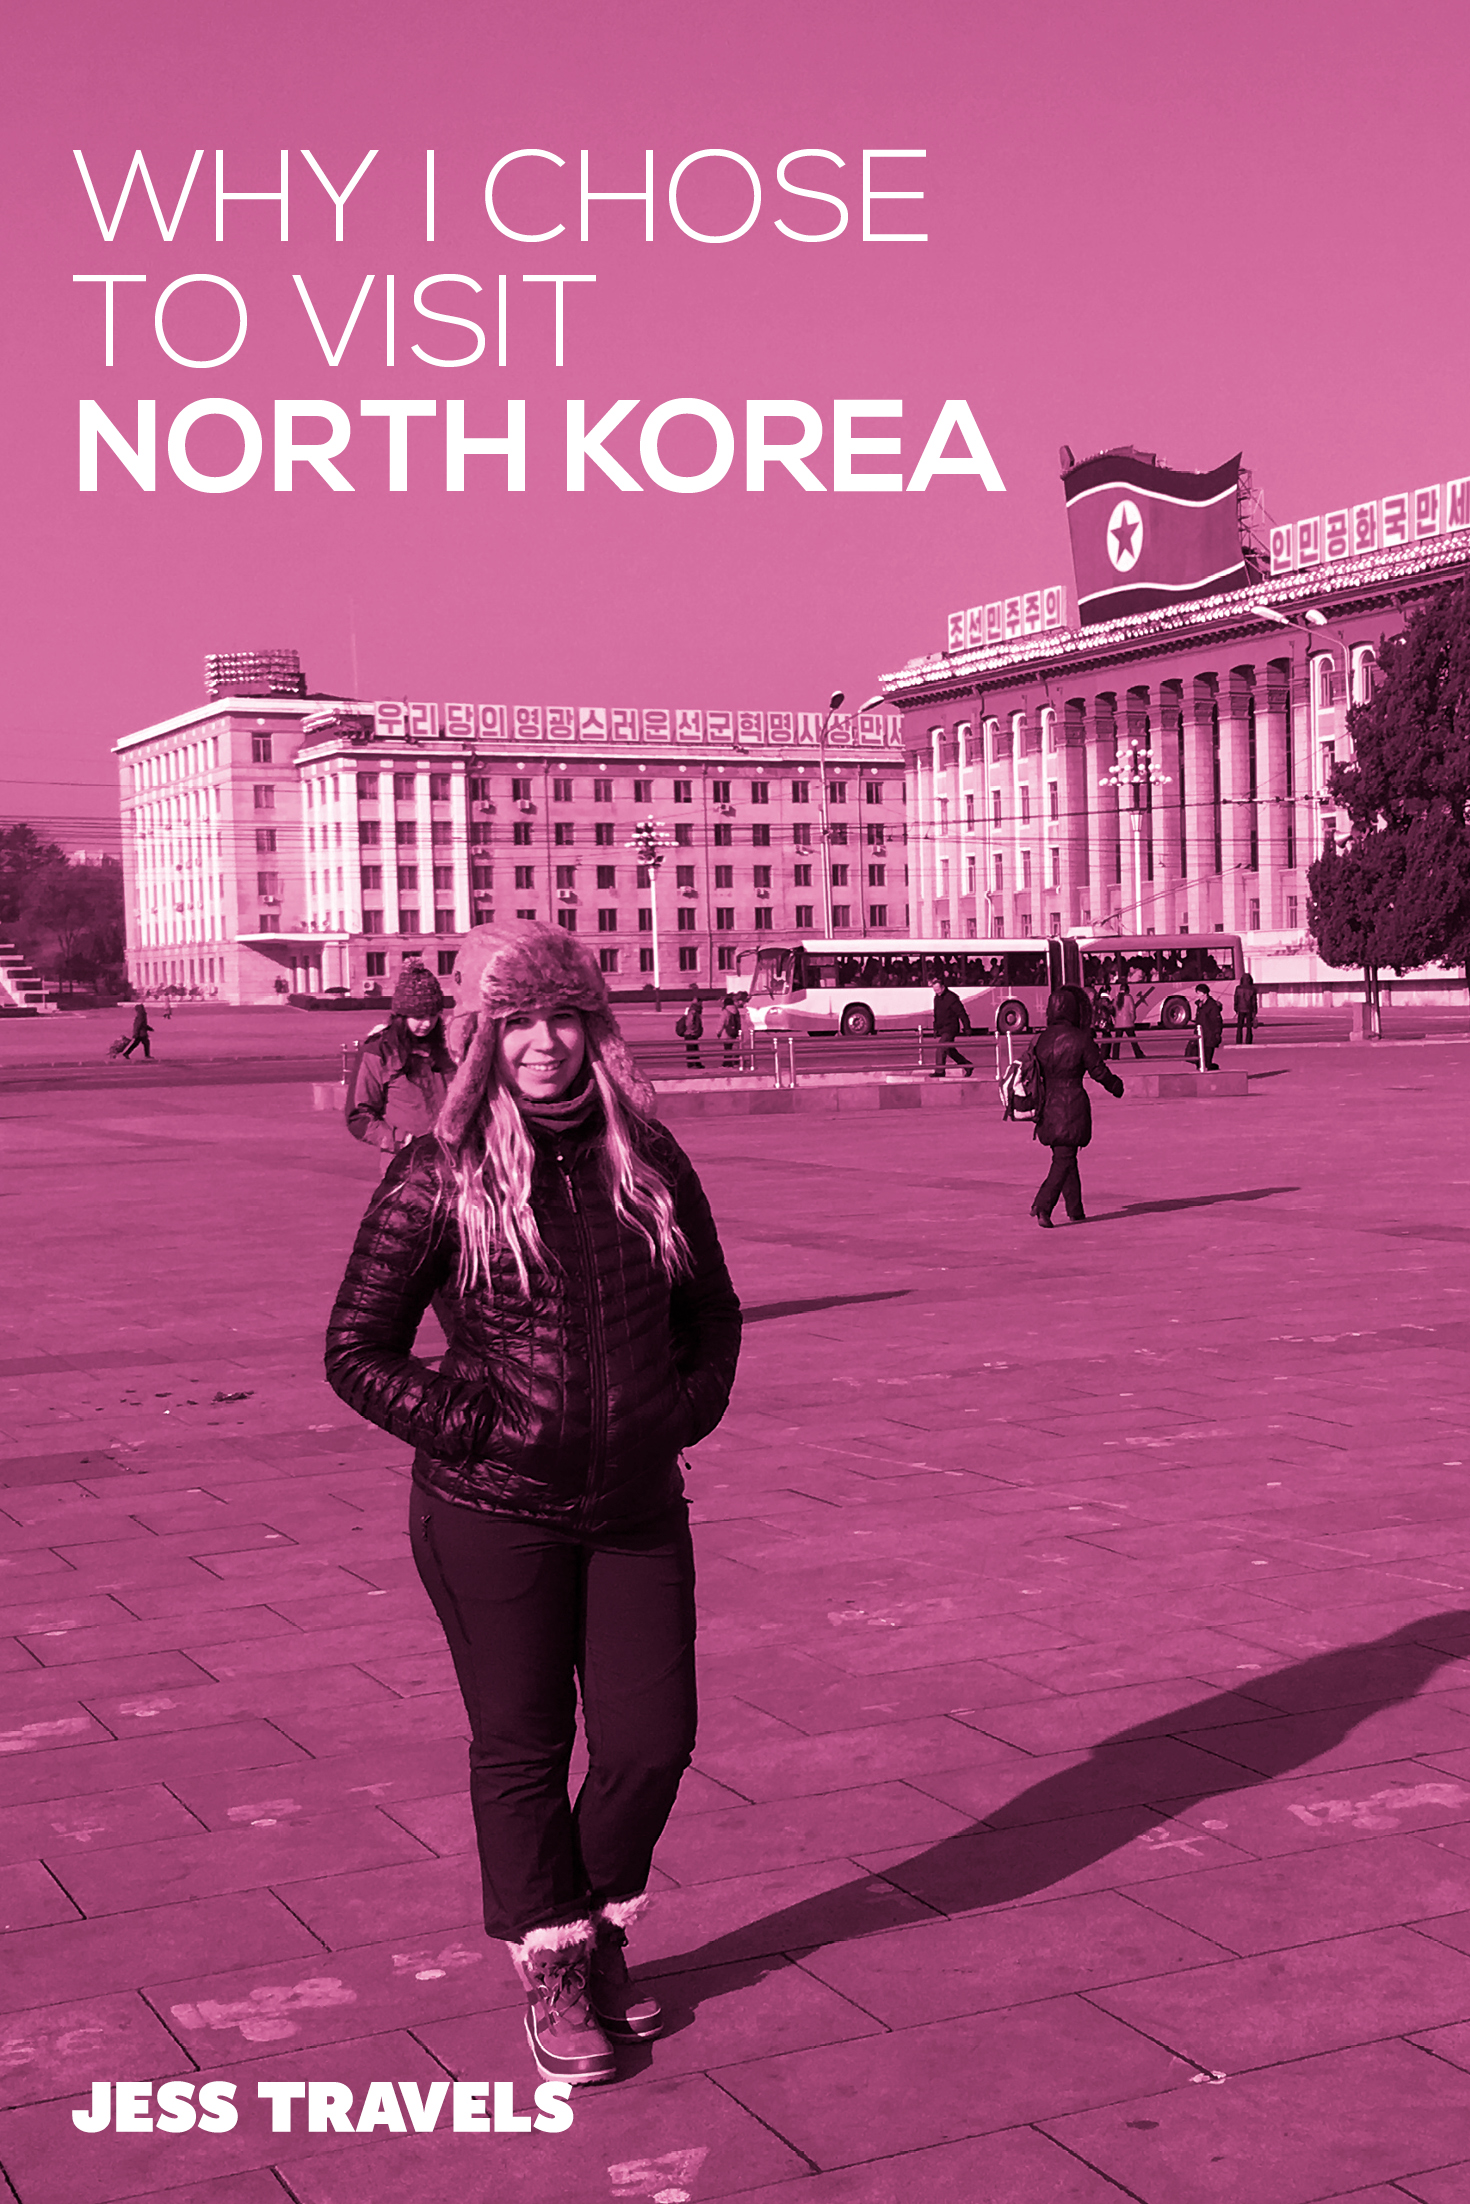 Why I chose to visit North Korea and whether it is right to visit as a tourist. #tourism #NorthKorea